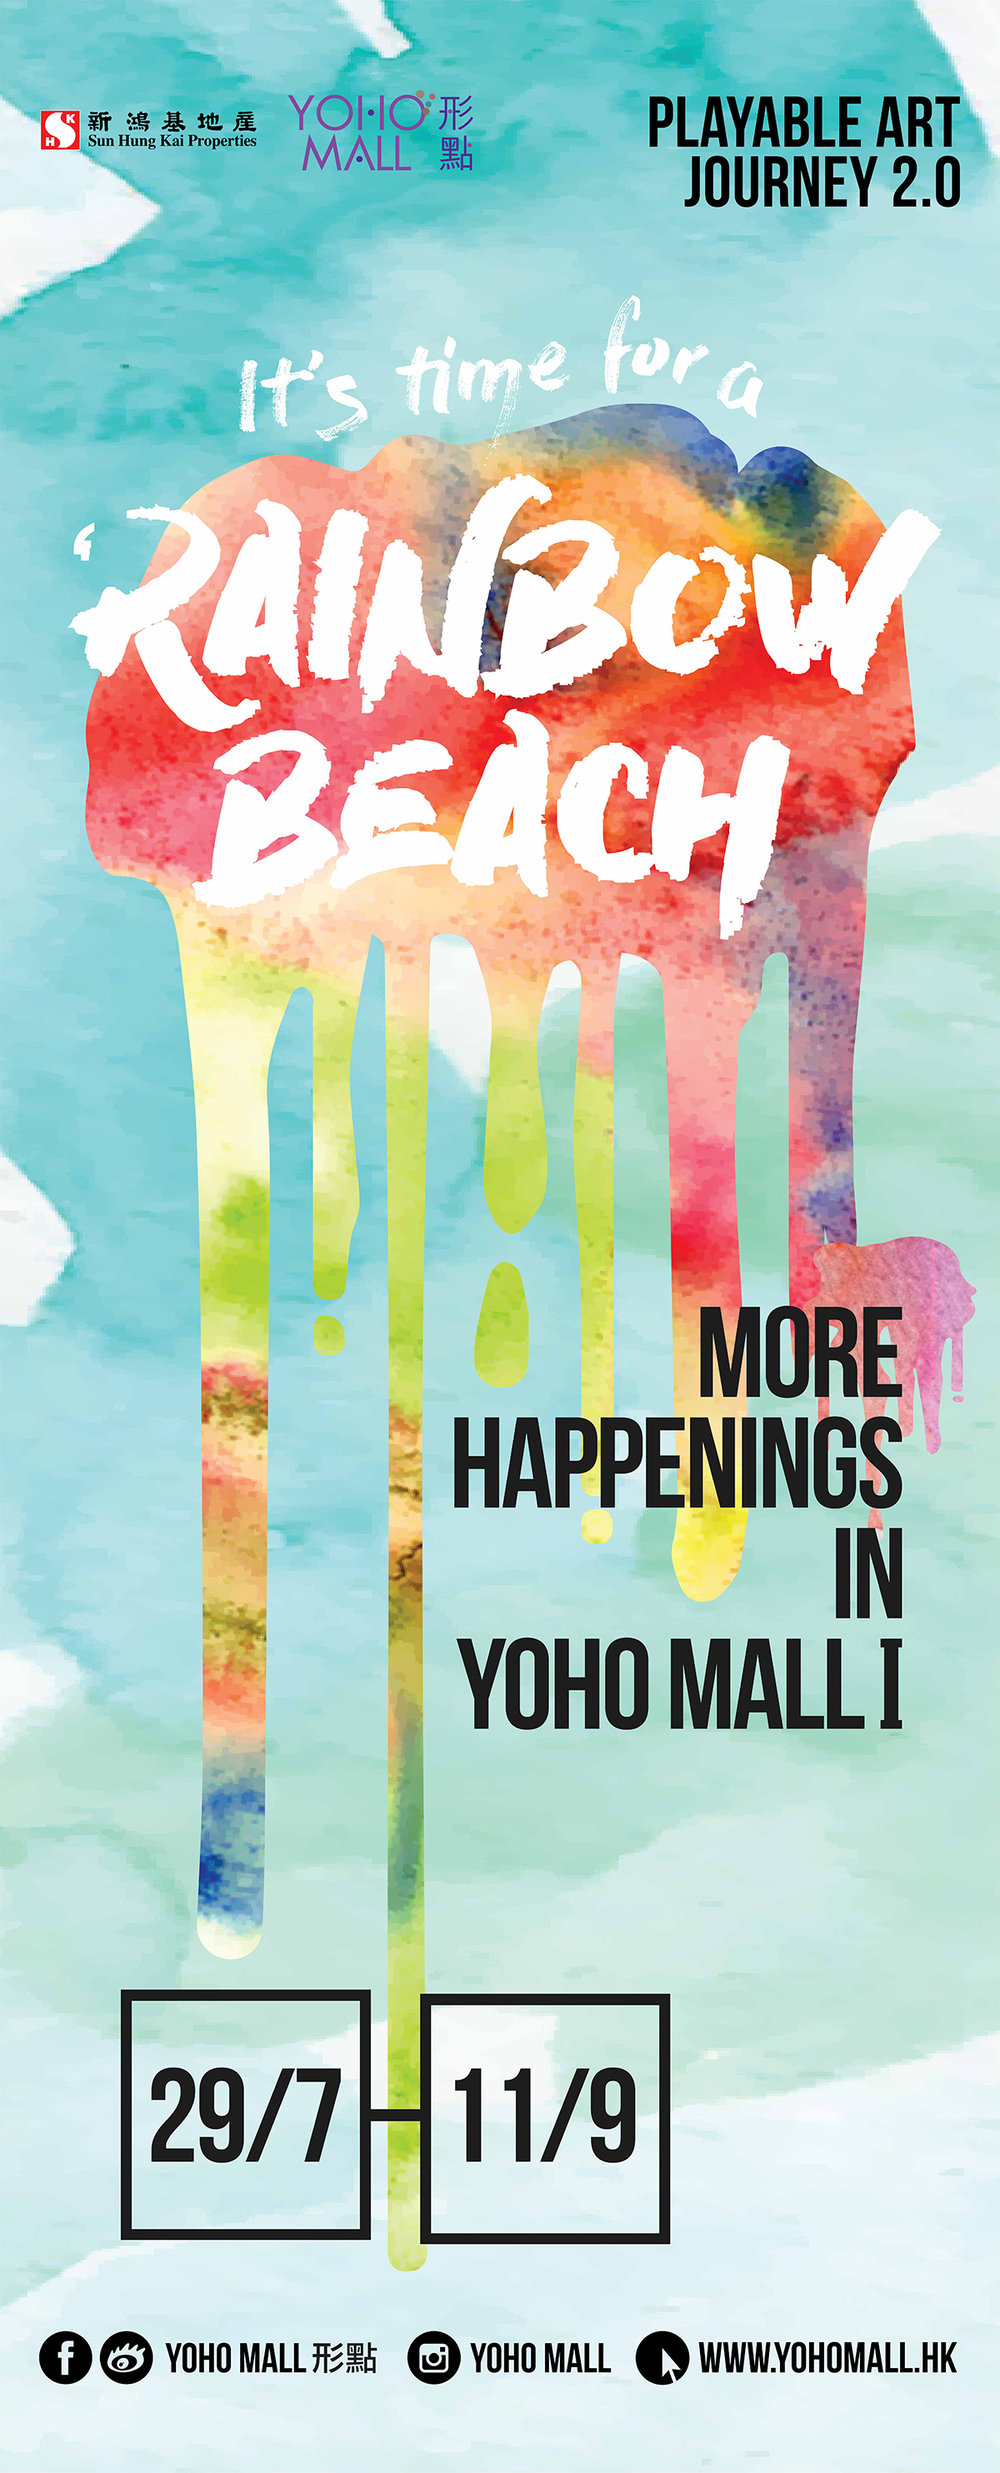 GRAPHICS DESIGN FOR YOHO MALL SUMMER CAMPAIGN - 2016